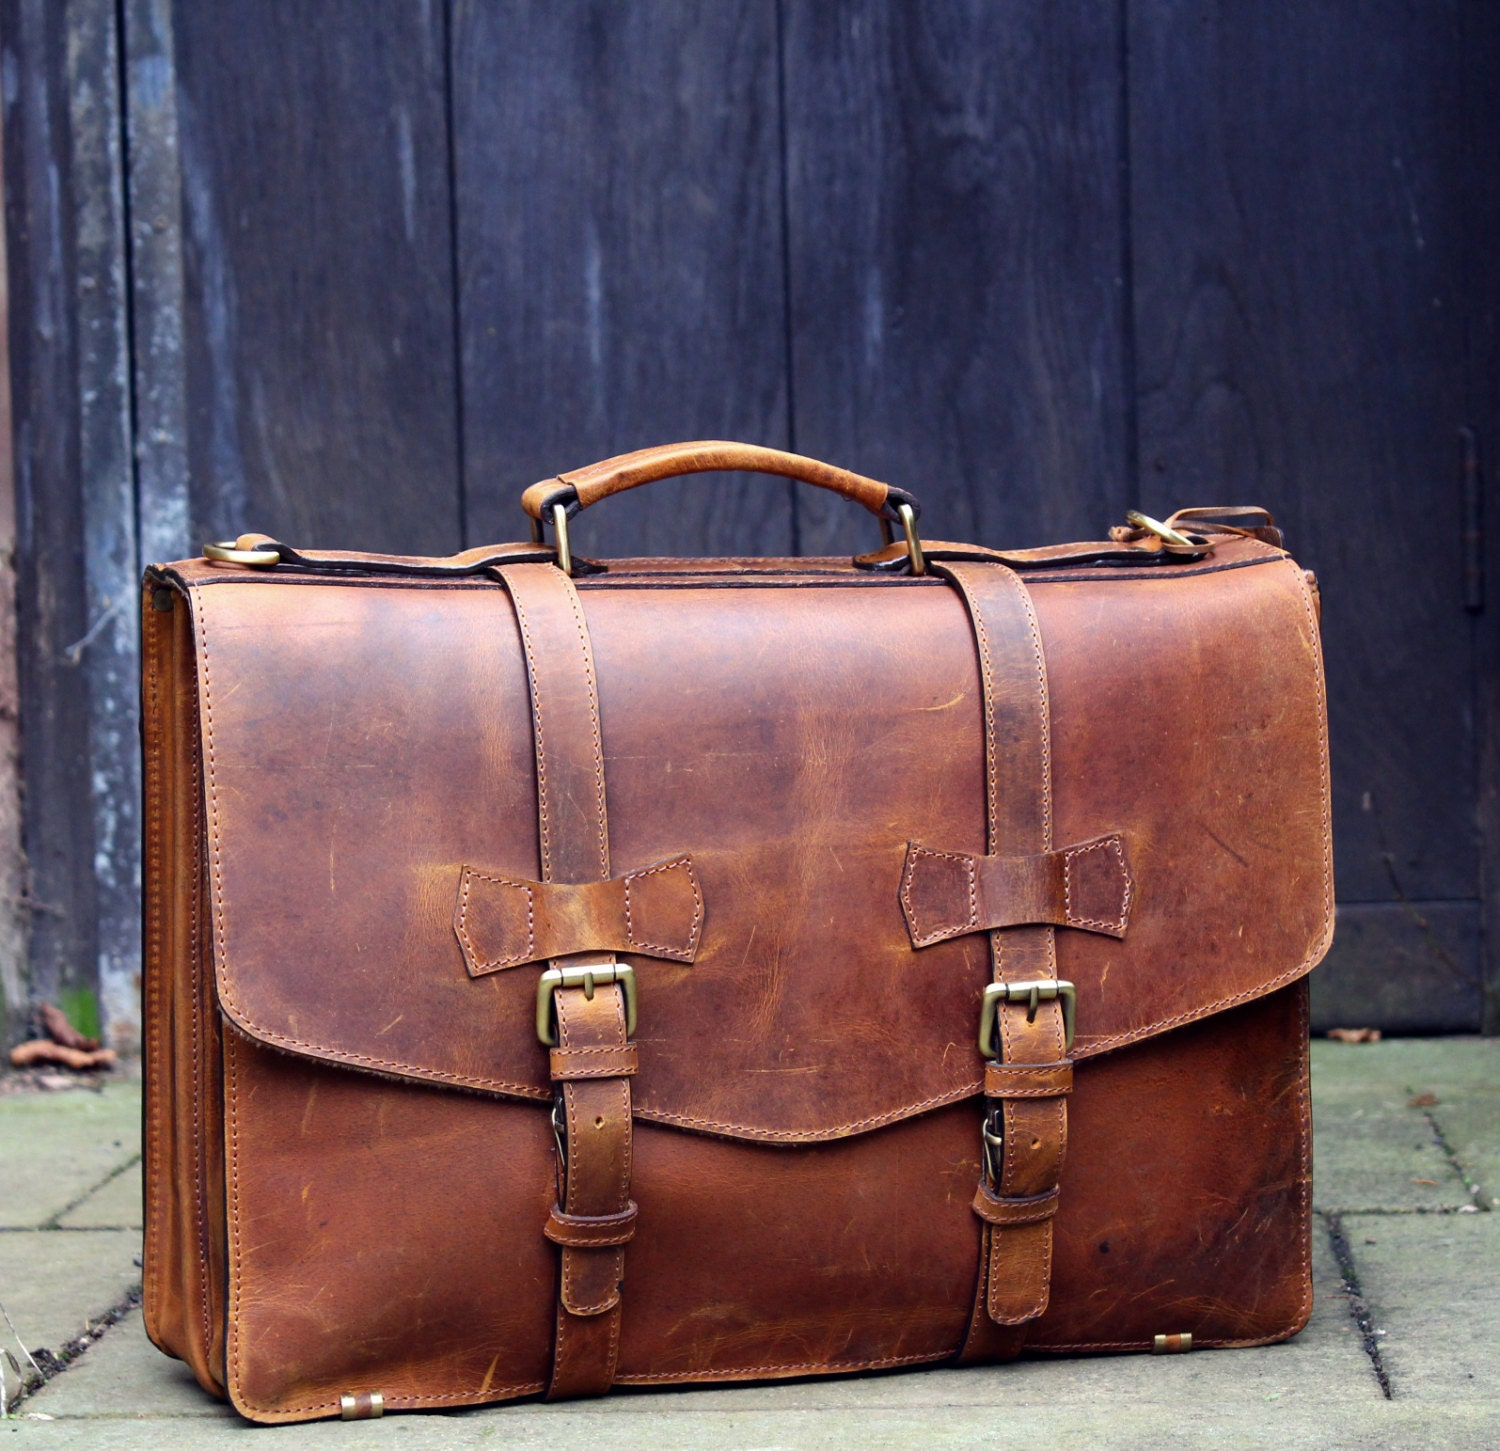 Briefcases: Free Shipping on orders over $45 at distrib-wq9rfuqq.tk - Your Online Briefcases Store! Get 5% in rewards with Club O! Dasein Faux Leather Briefcase Satchel Handbag with Matching Accessory Pouch. 11 Reviews. Men's David King Leather Expandable Laptop Briefcase .